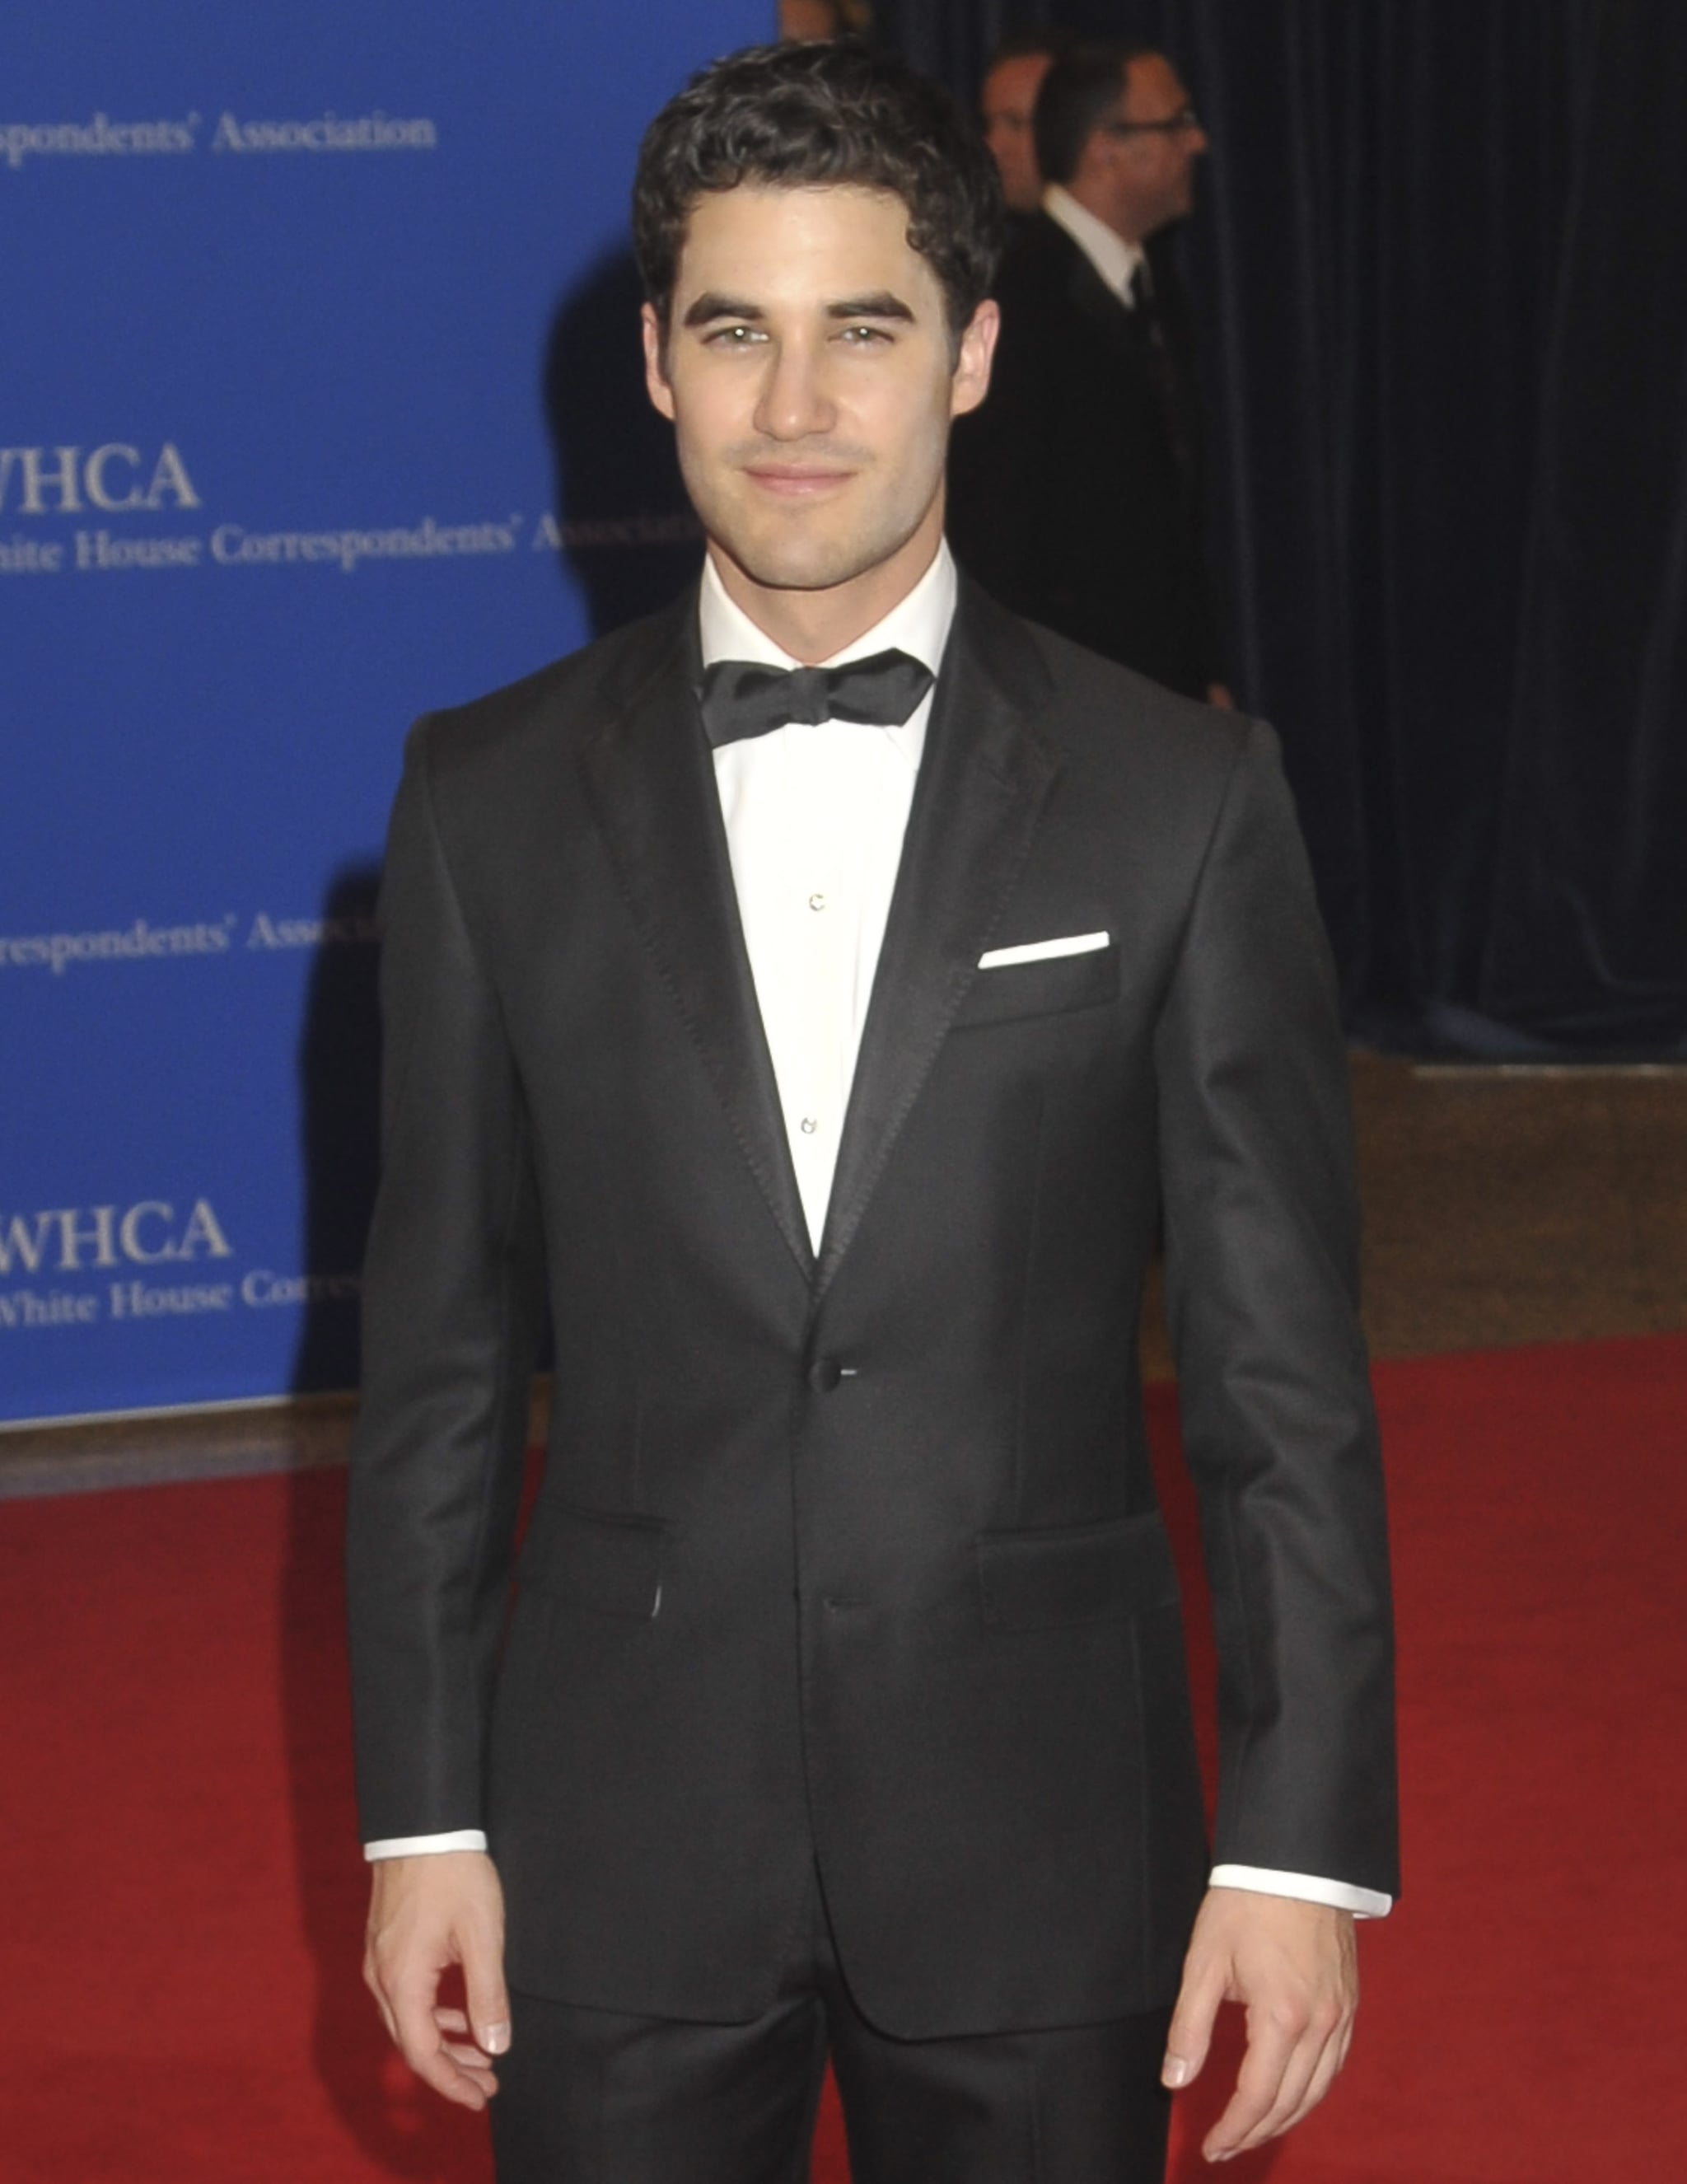 Darren Criss donned a bow tie.